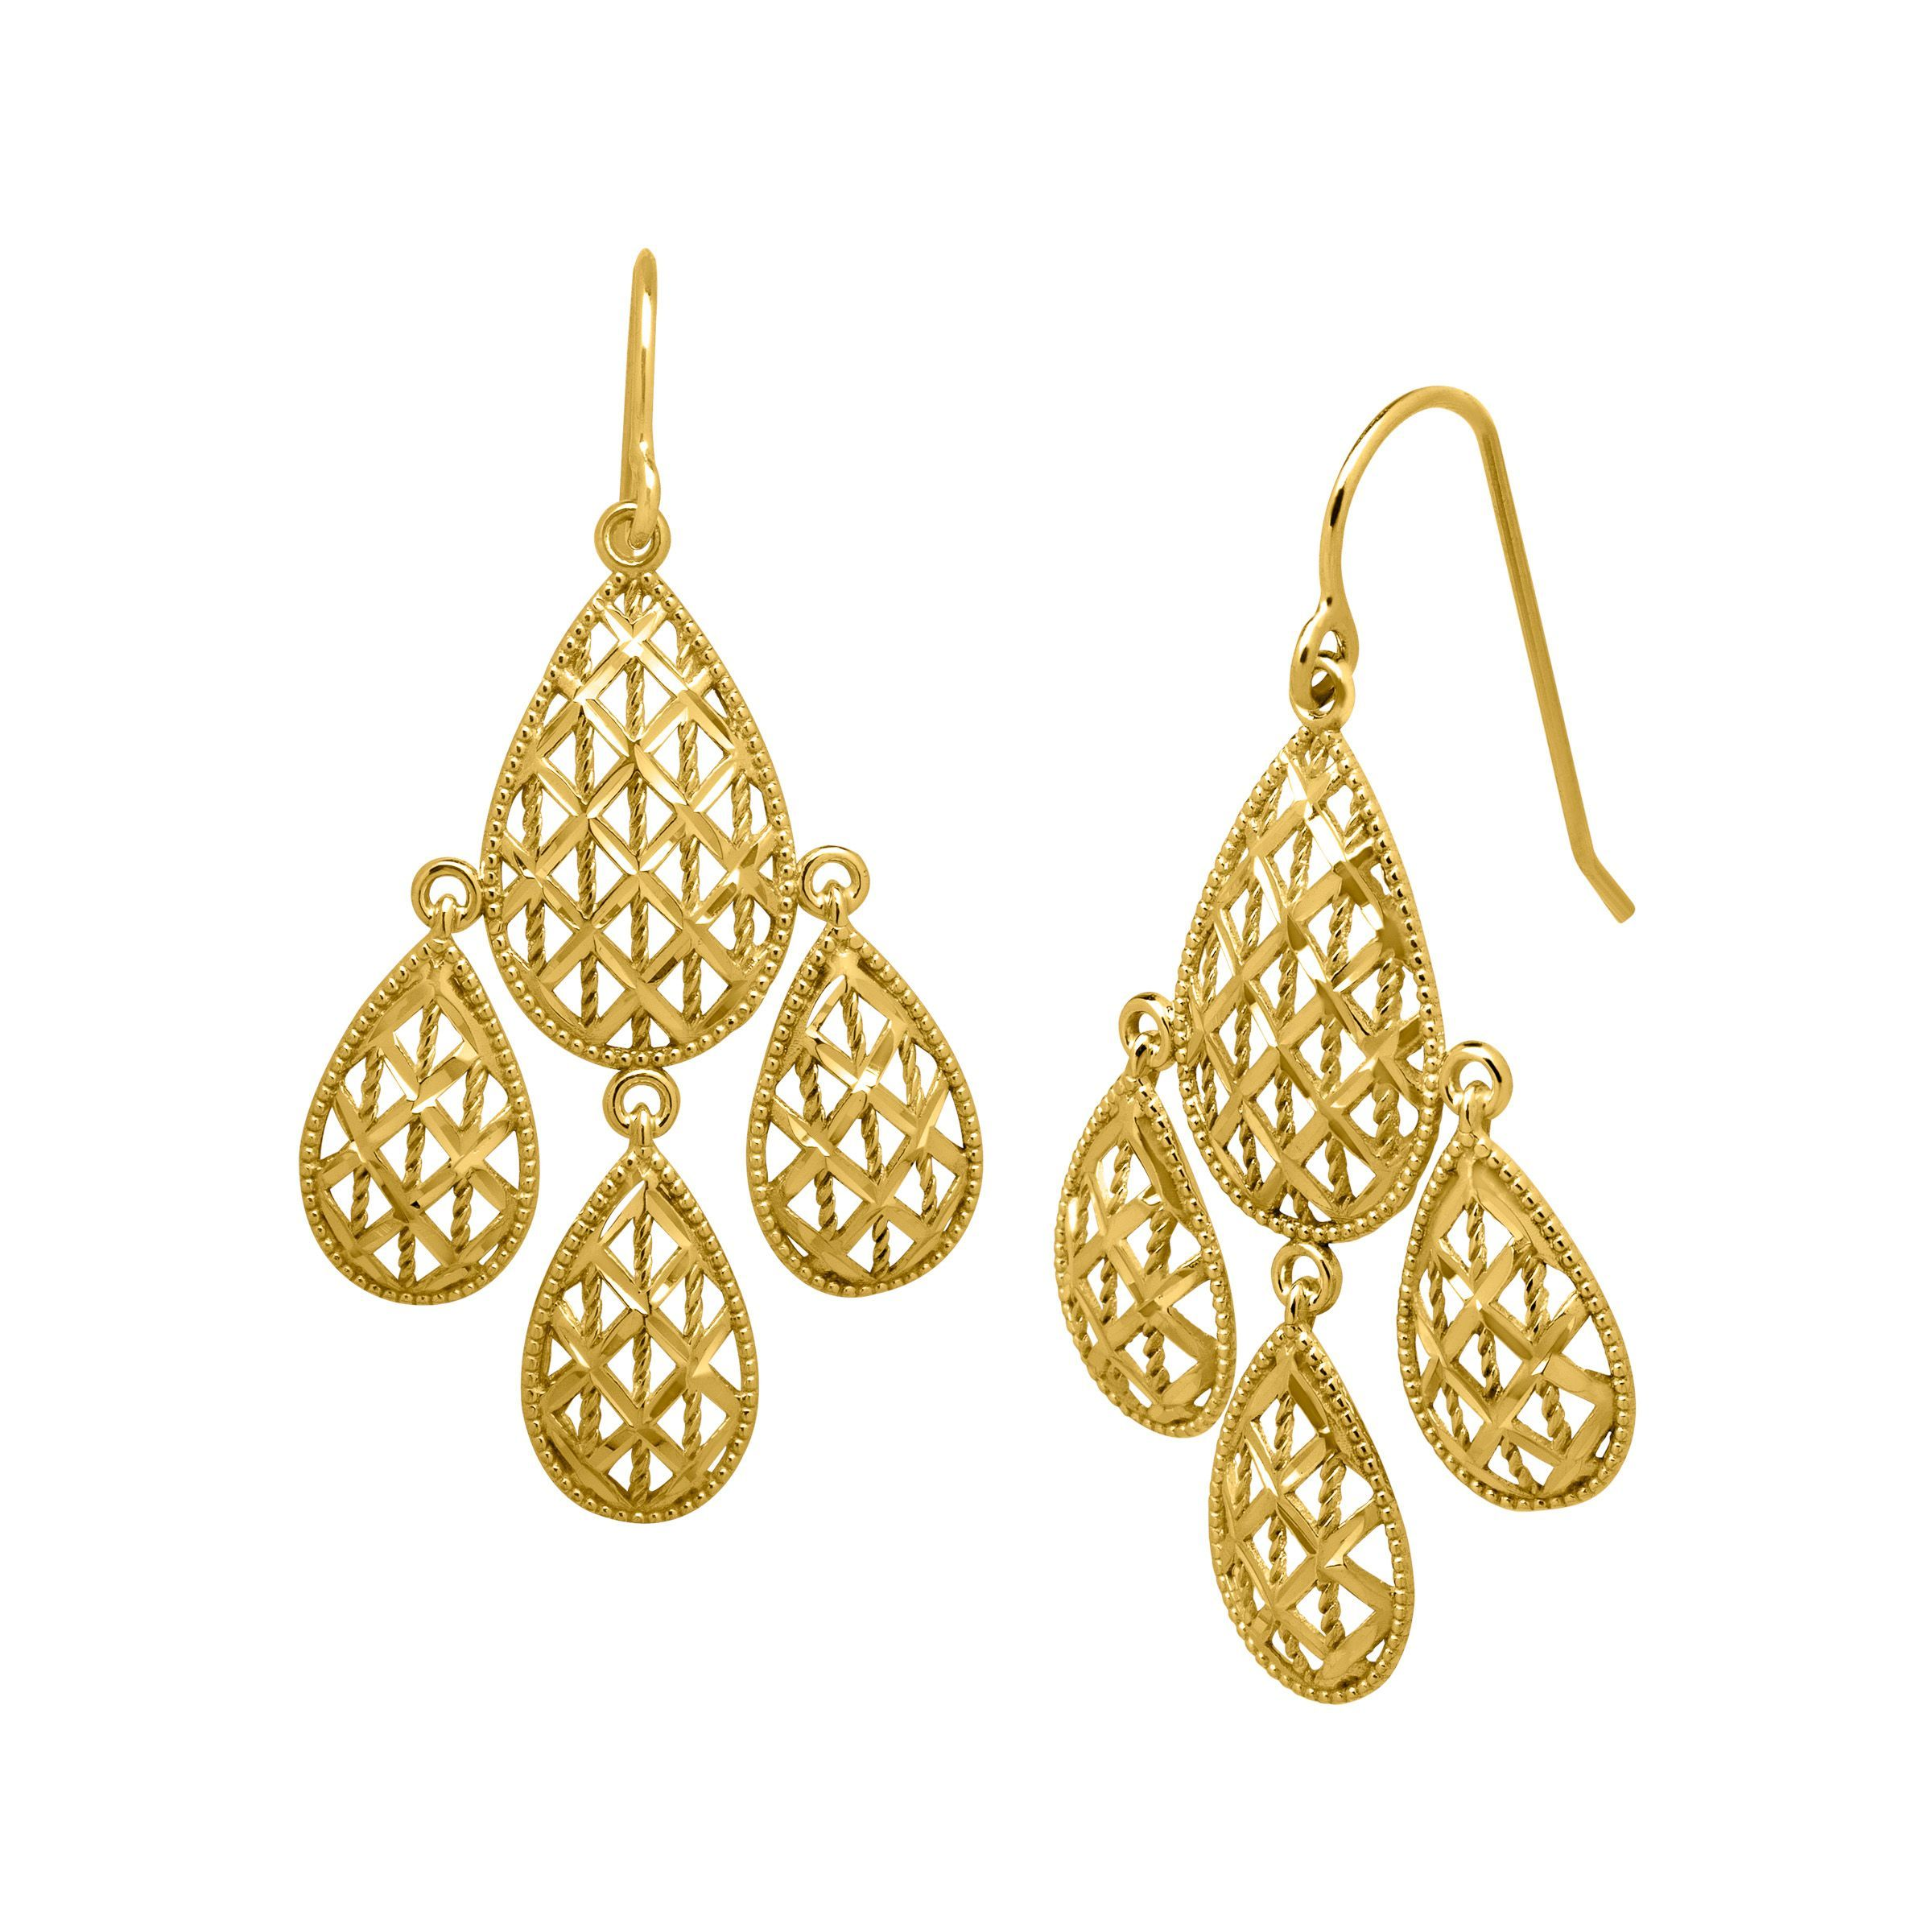 Eternity Gold Chandelier Mesh Earrings In 10k